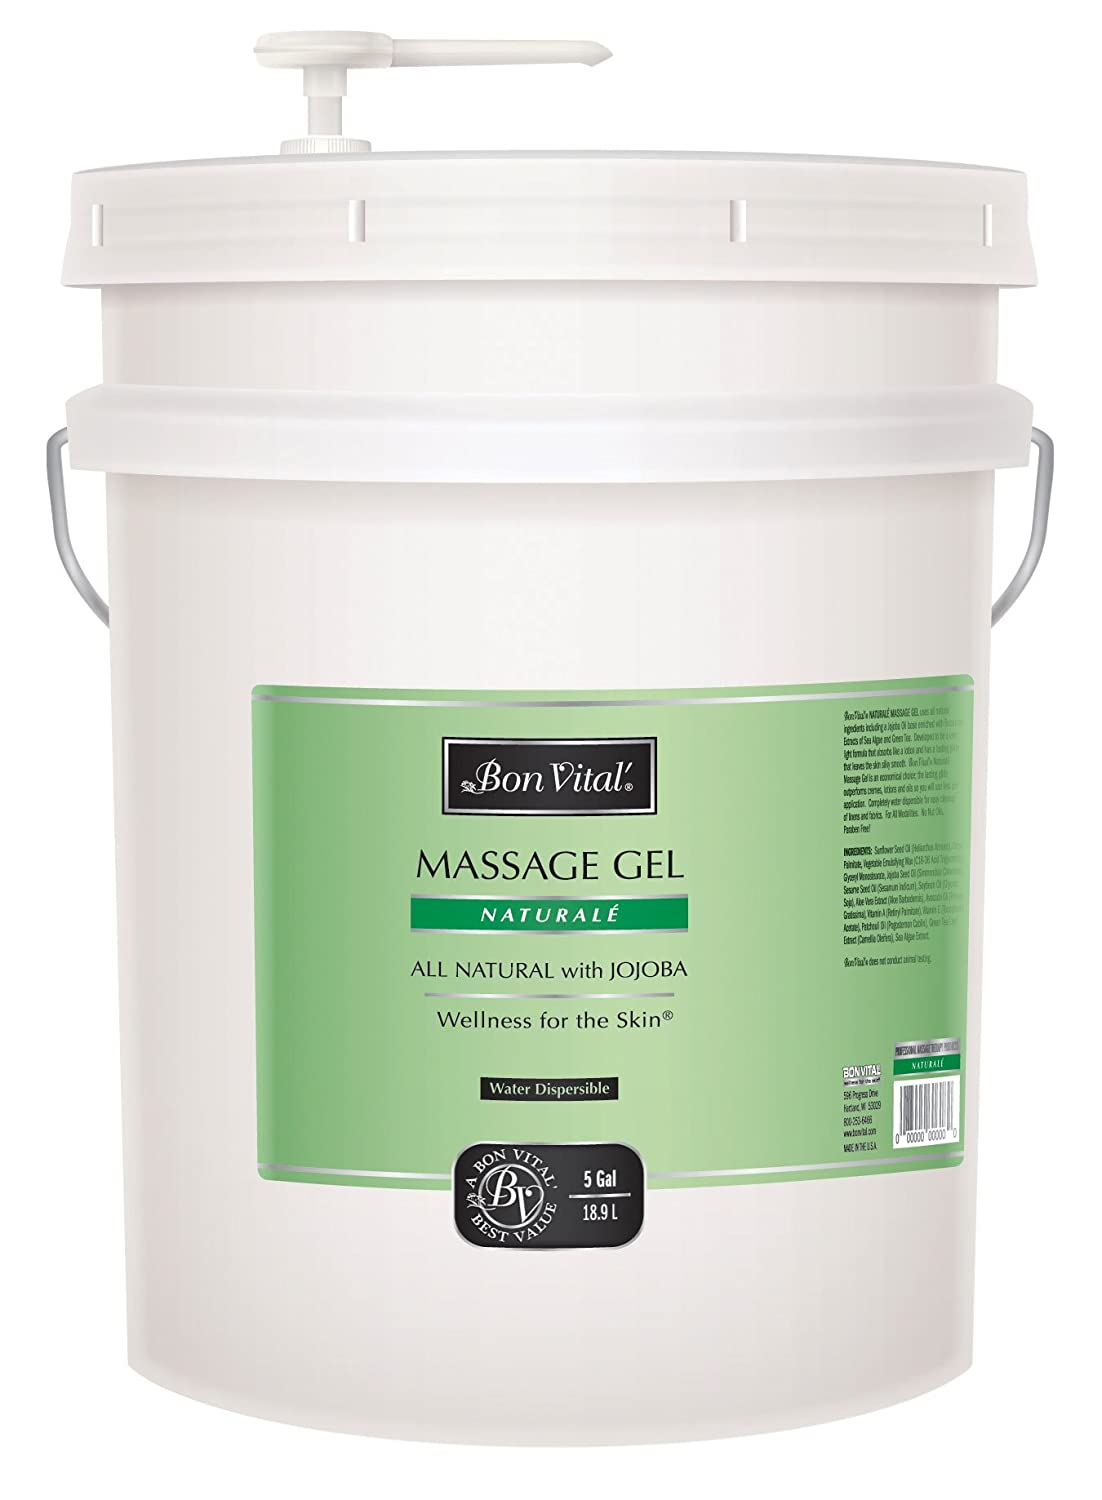 Bon Vital' Muscle Therapy Massage Gel Made with Dwarf Pine Oil and Essential Oils for a Relaxing Massage, Arthritis Pain Relief, and Sore Muscle Relief, Great for Use in Graston and IASTM, 1 Gallon Bon Vital' BVMTG1G